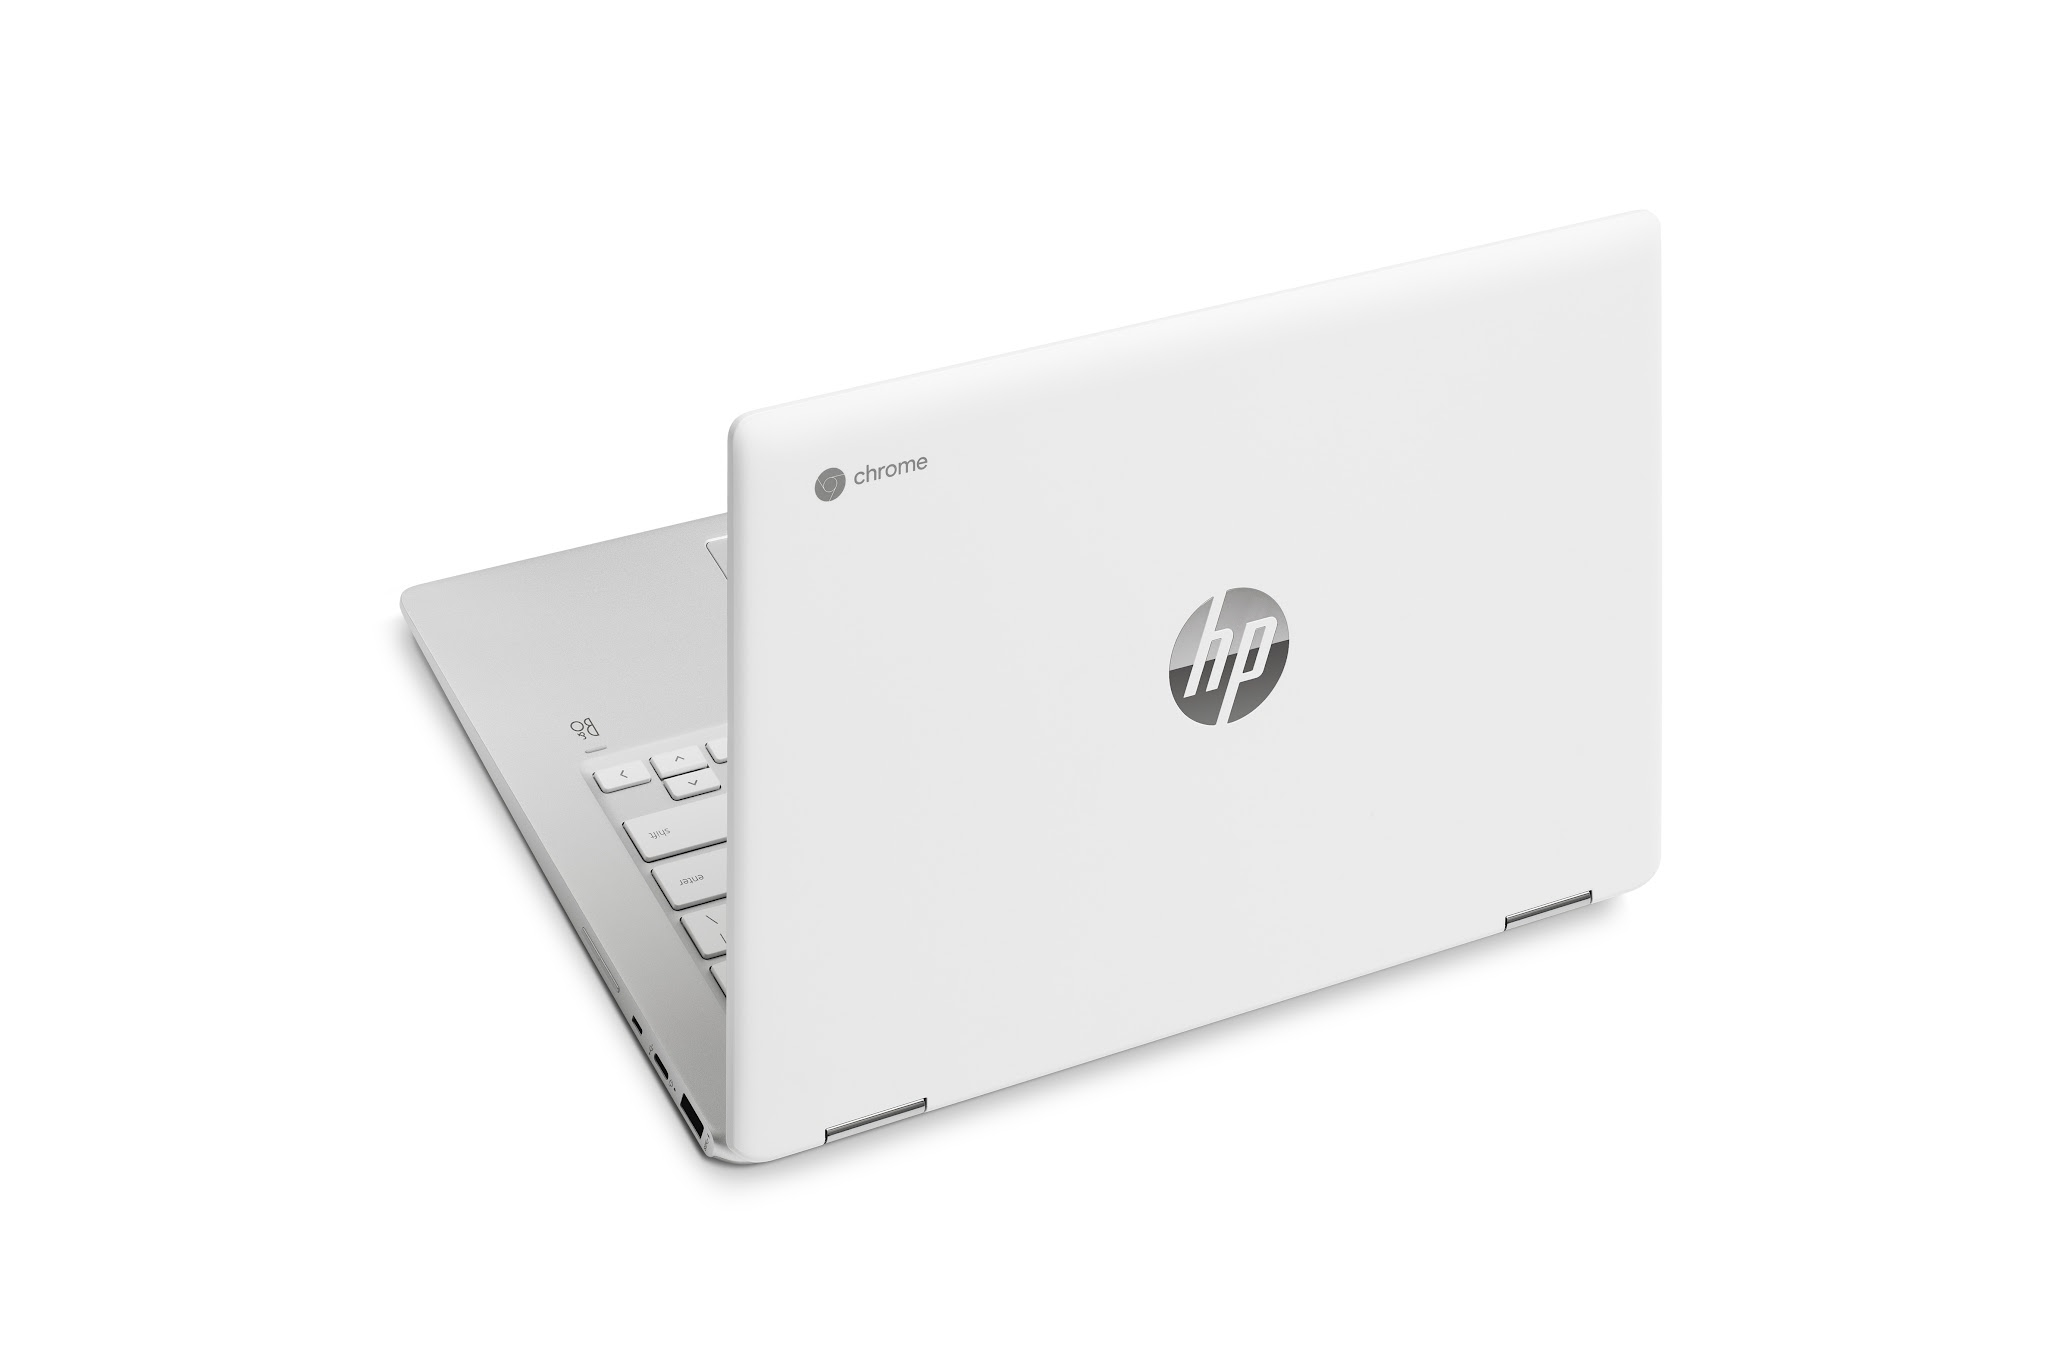 HP Chromebook x360 14b - photo 13